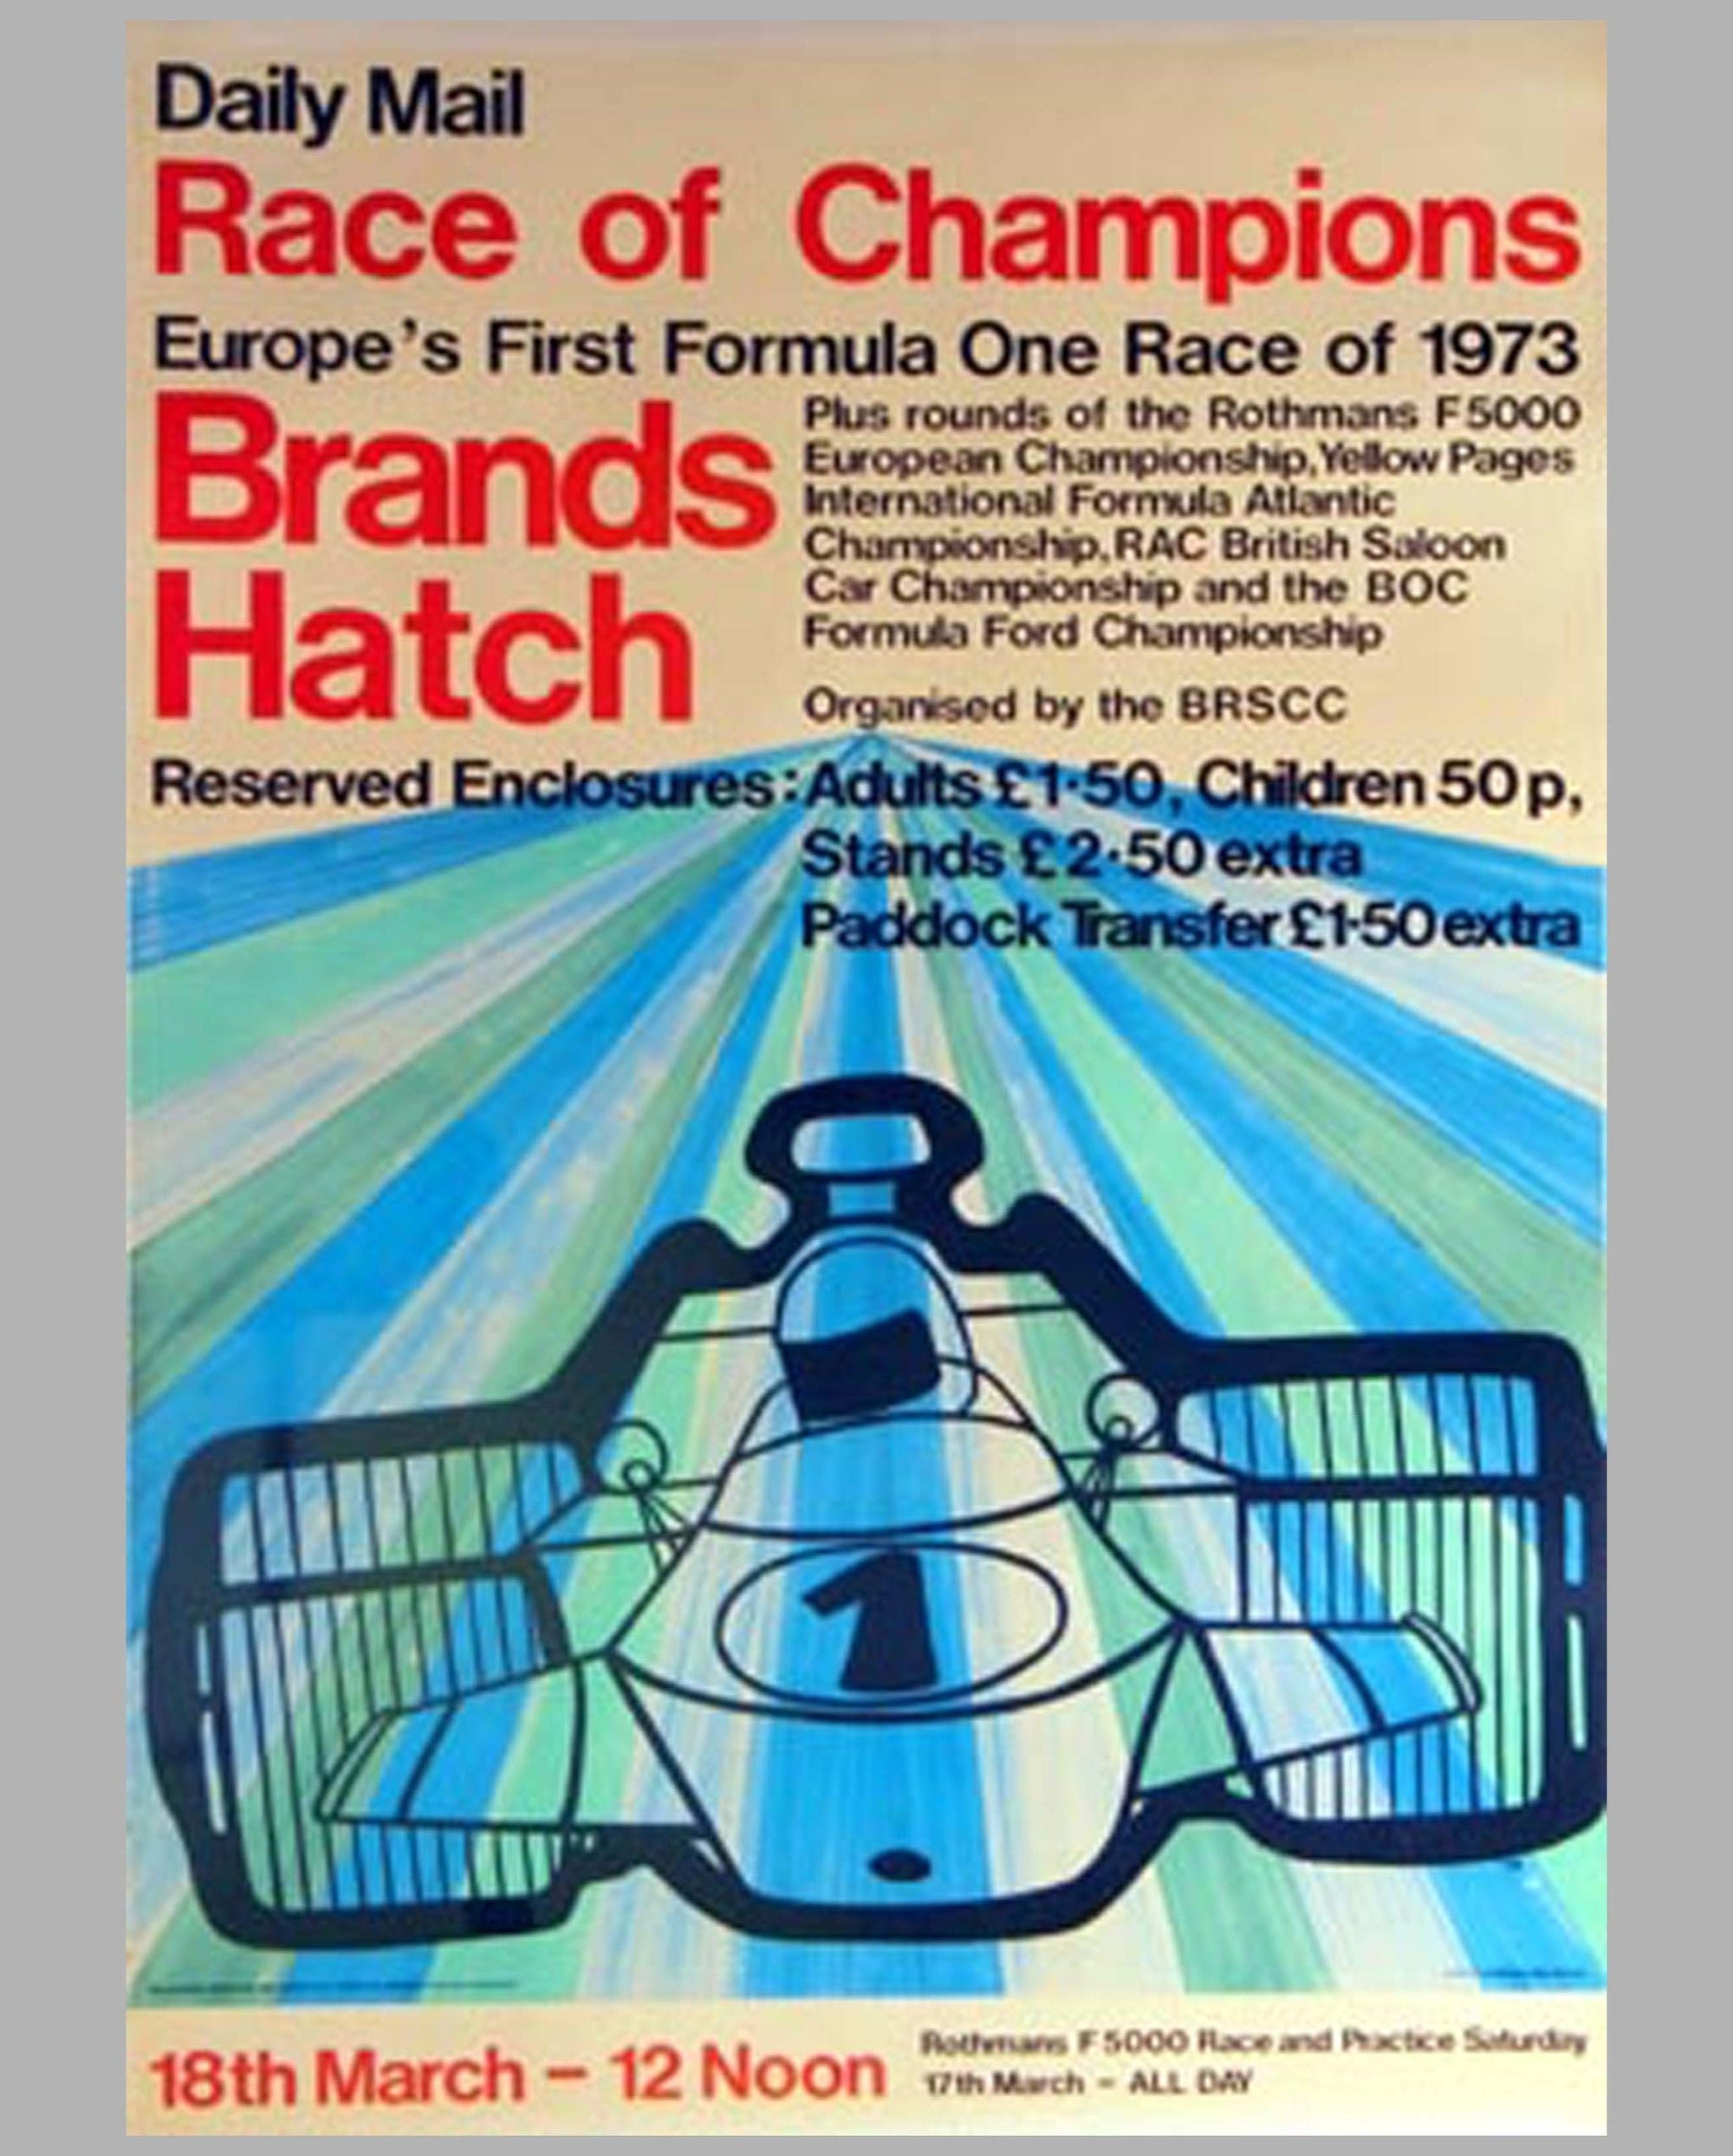 1973 Brands Hatch F1 (Race of Champions) event poster